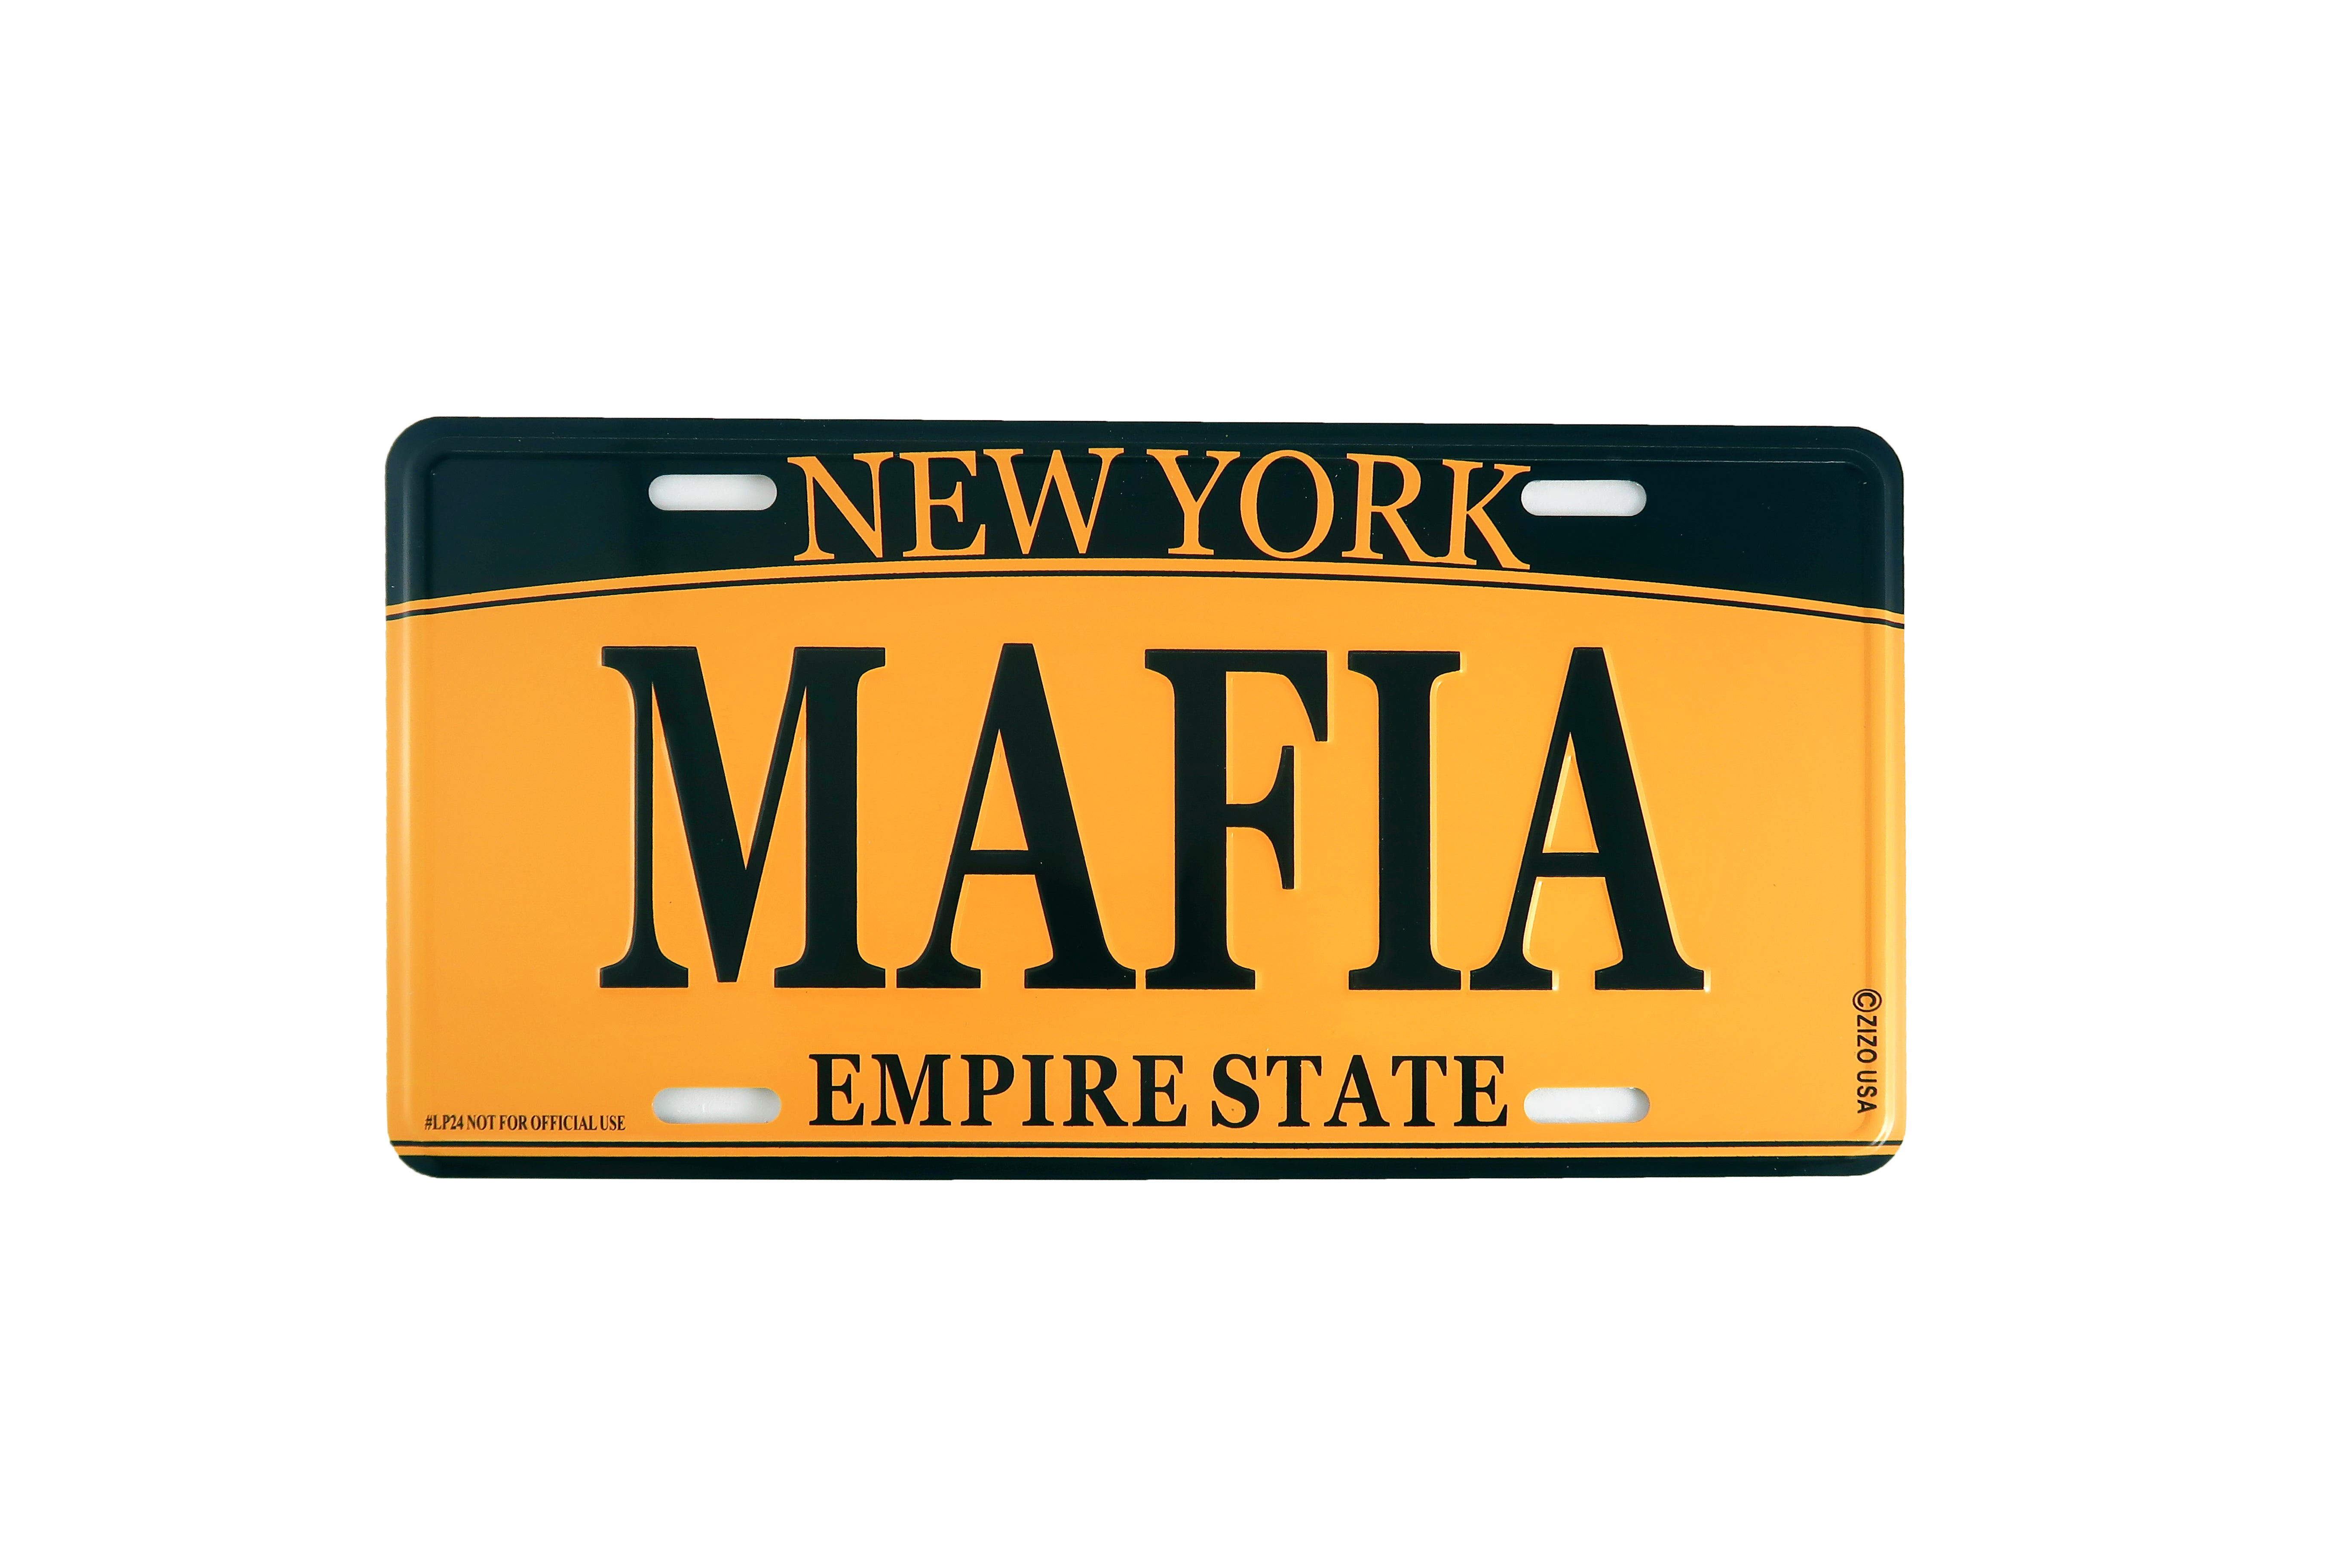 Metal Mafia Replica License Plate